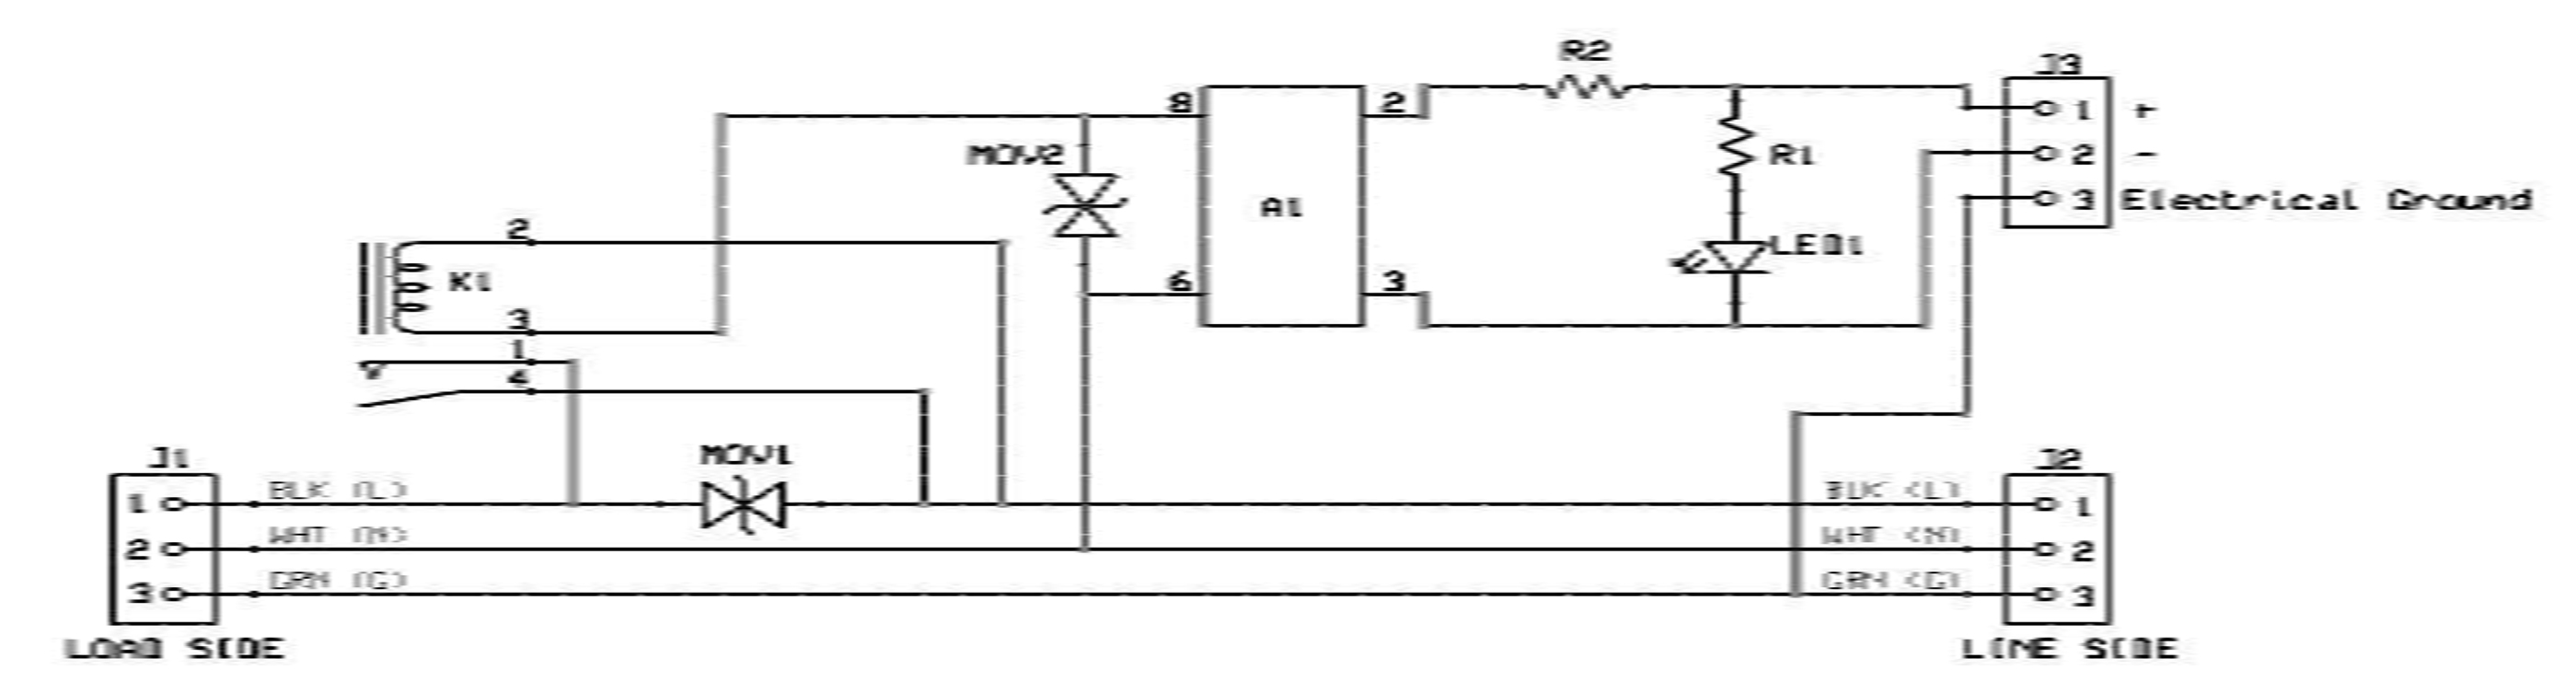 Drivers Relays And Solid State Mbed Relay Dimmer Power Switch Tail Ii Schematic